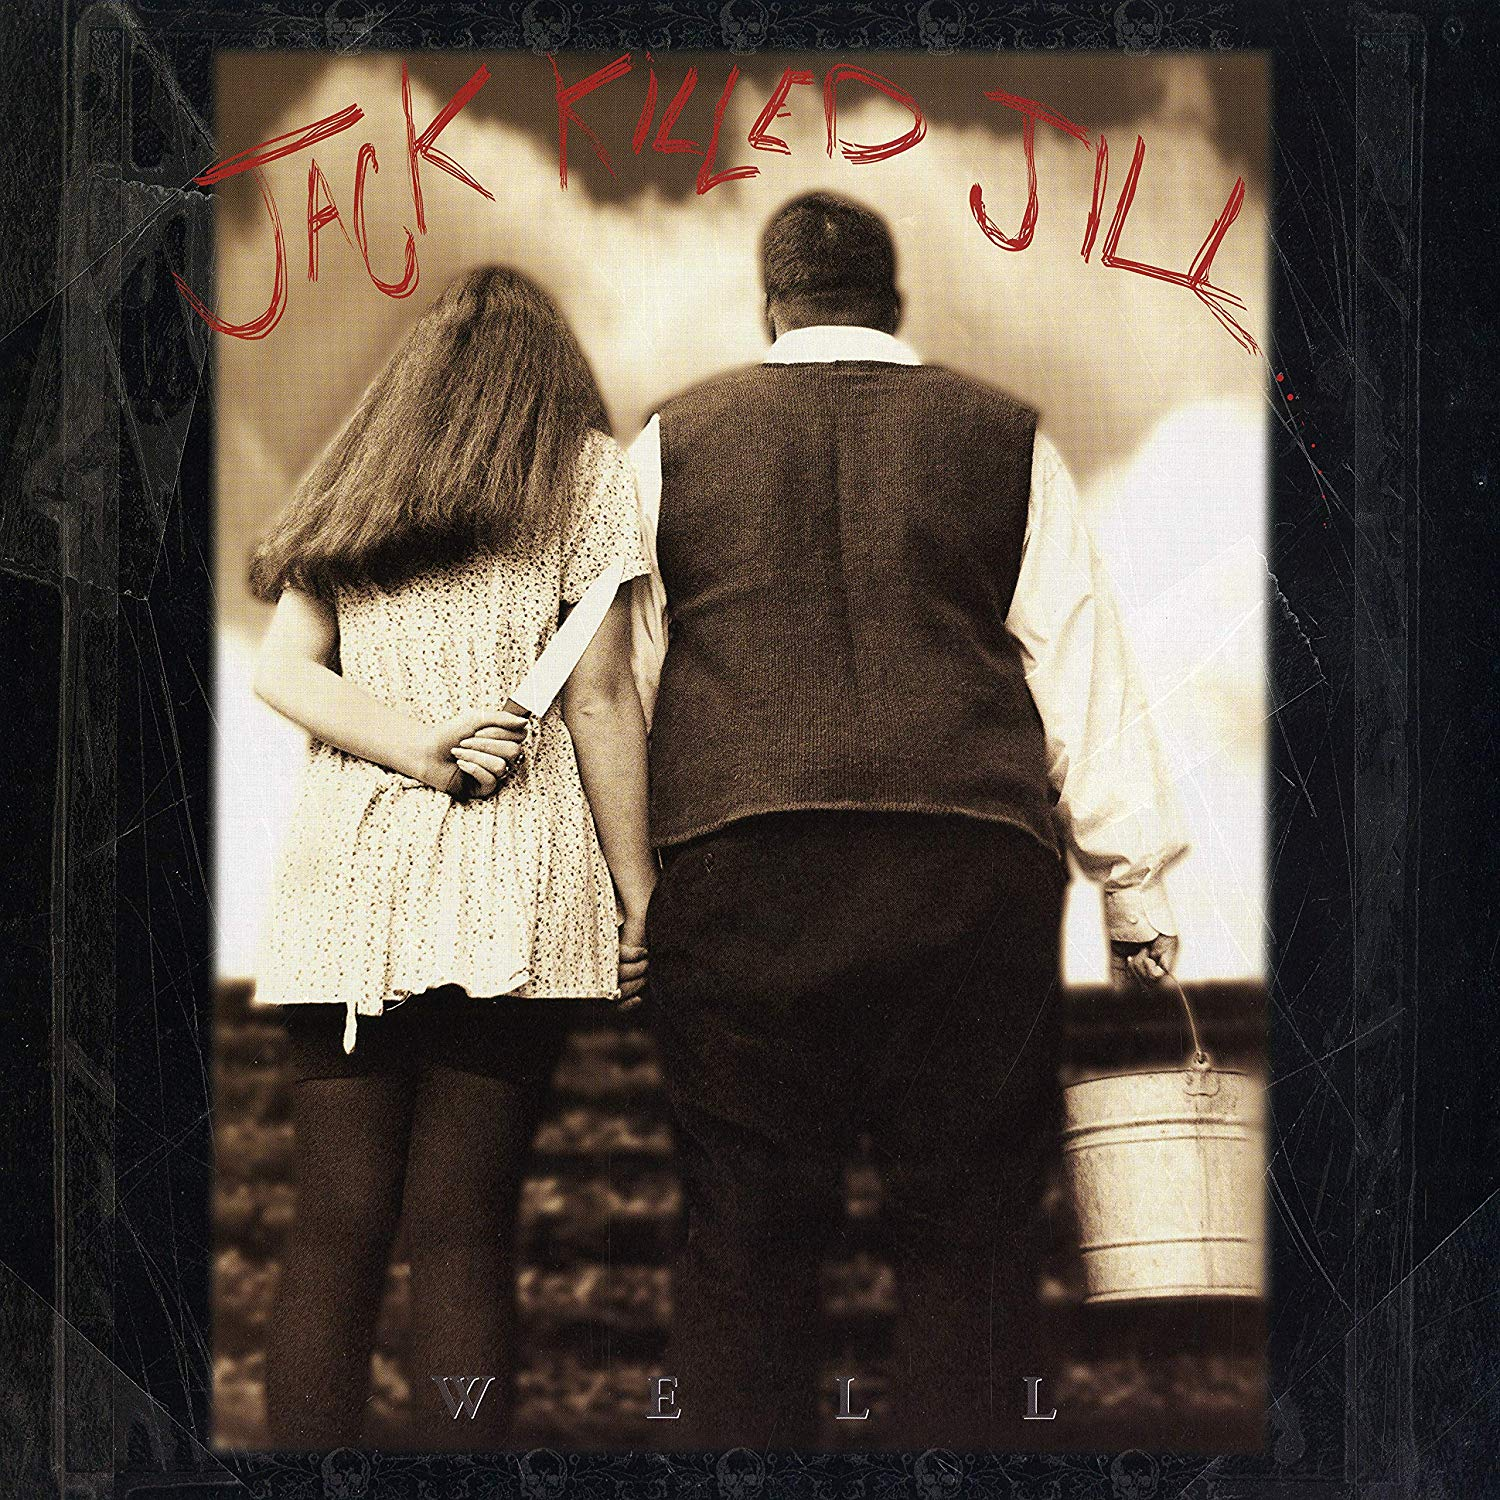 Jack Killed Jill - Well